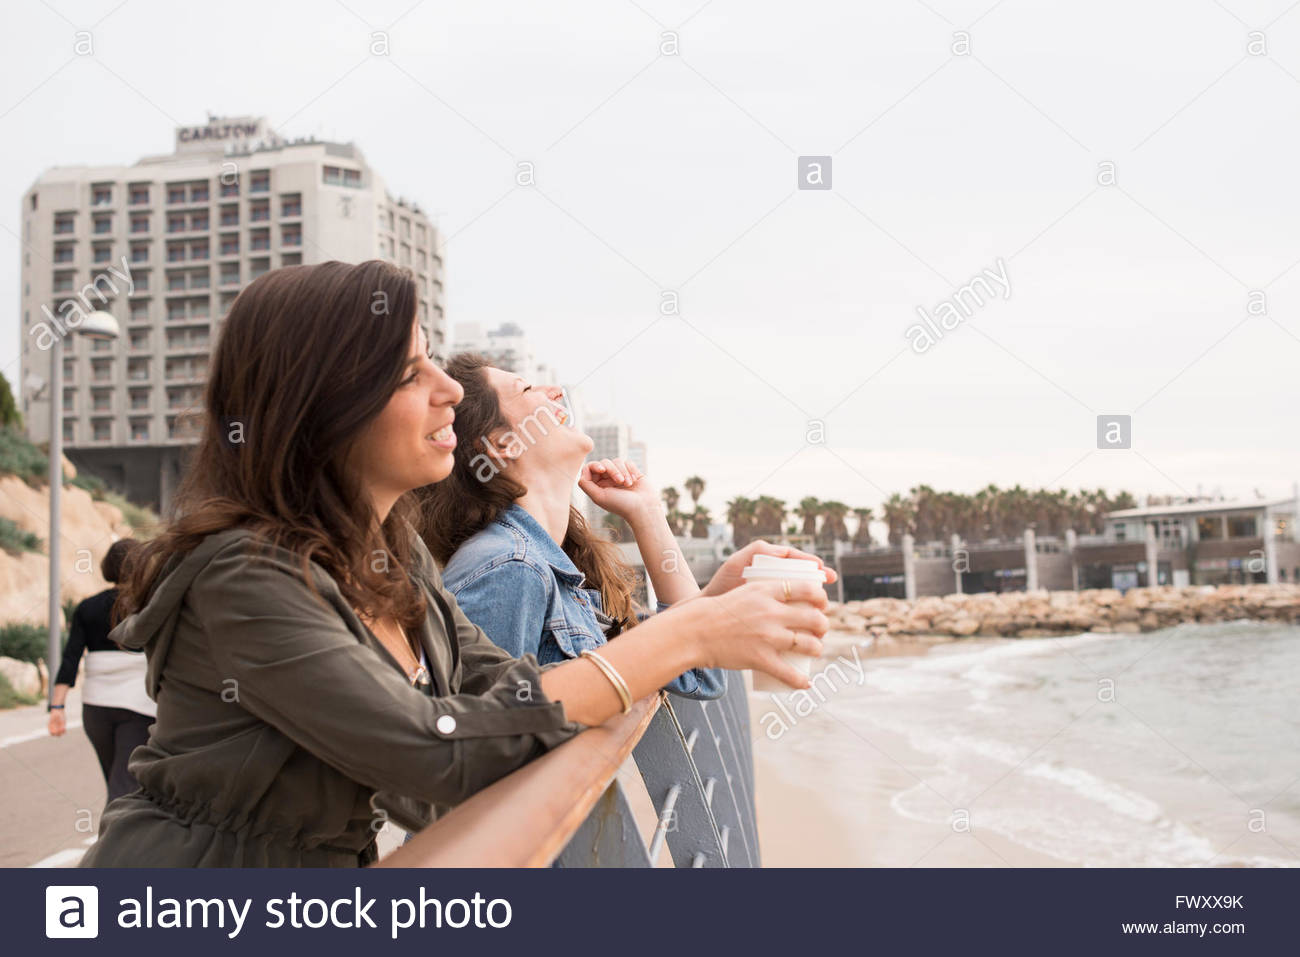 Israel, Tel Aviv, Two women standing by railing of promenade - Stock Image